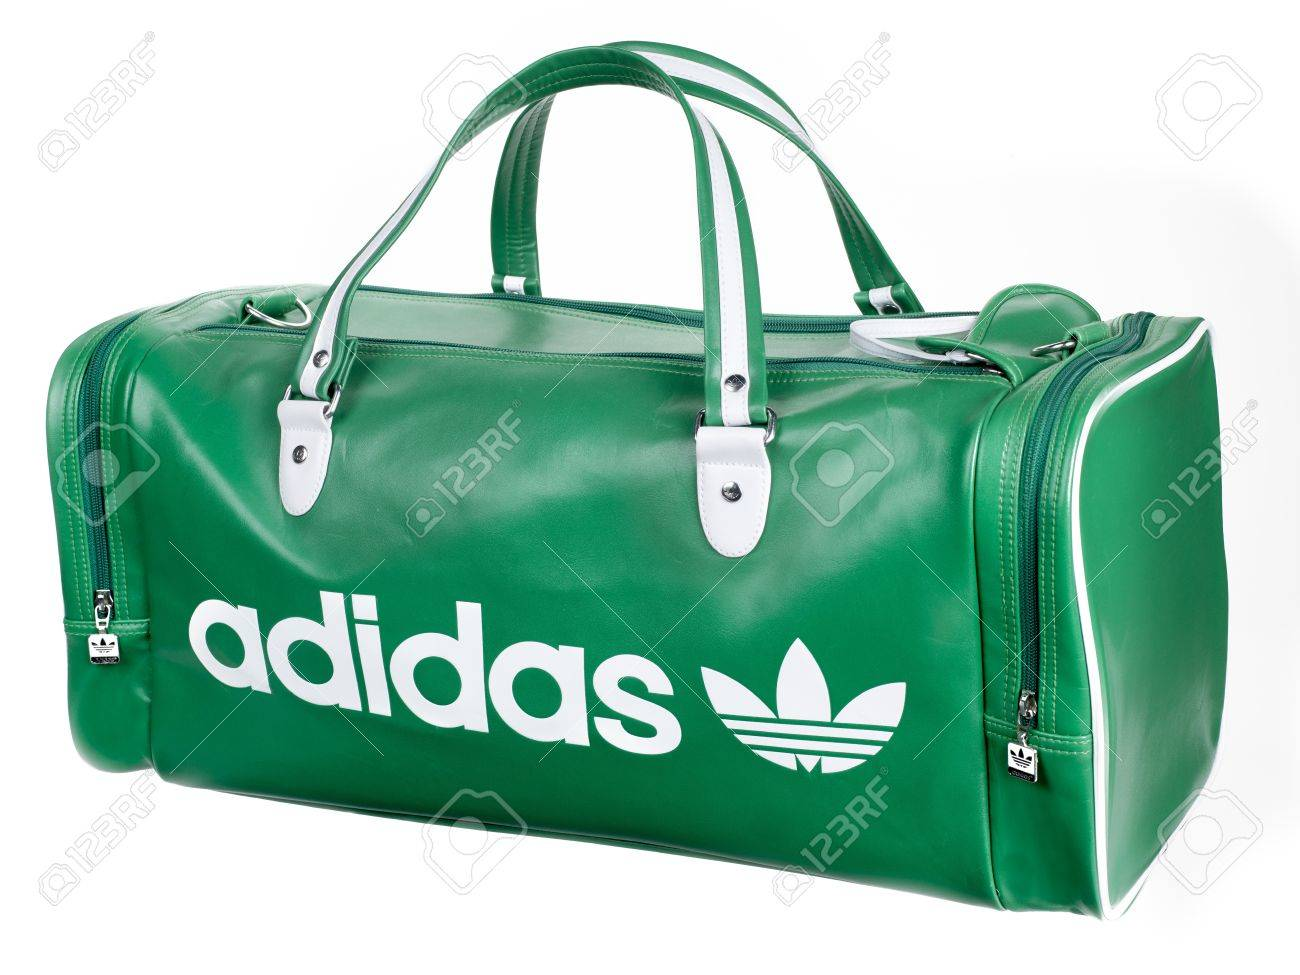 b58942e786 Buy adidas duffle bag sale